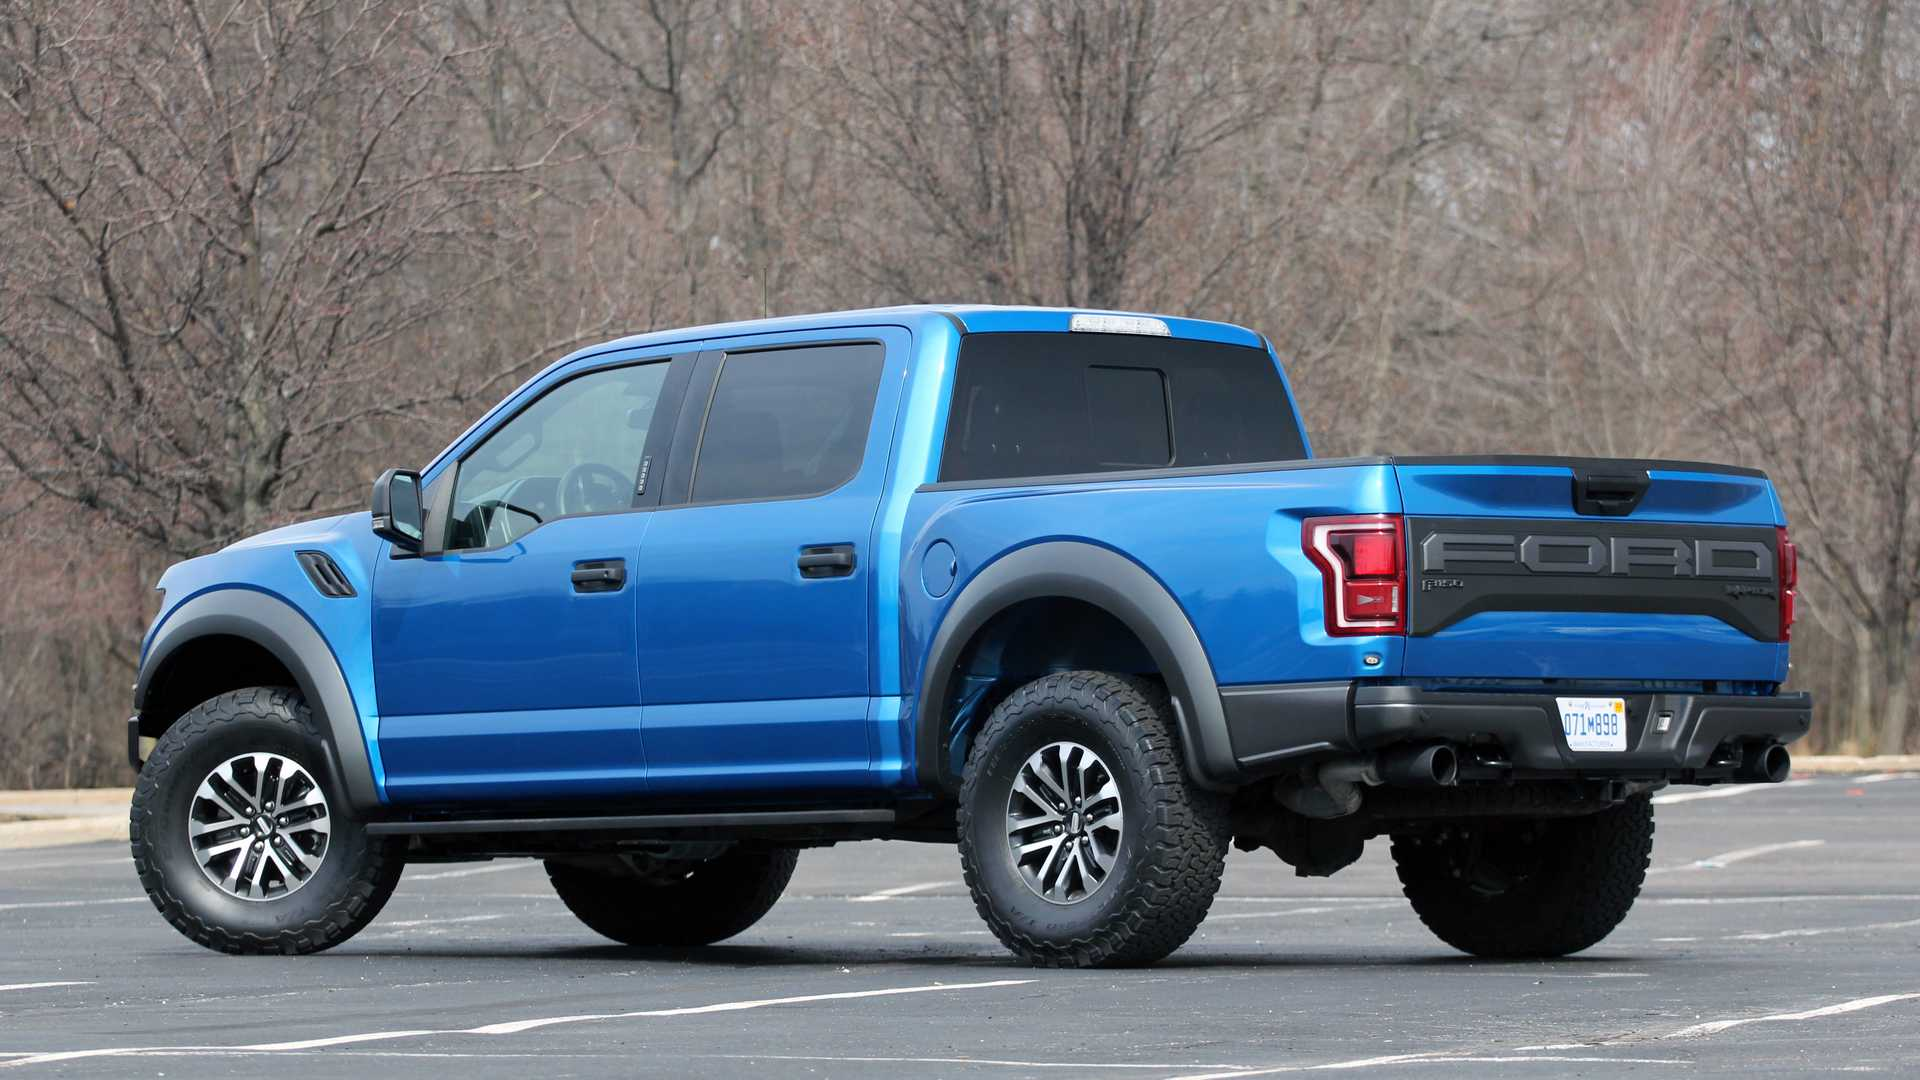 2019 Ford F-150 Raptor Review: Army Of One